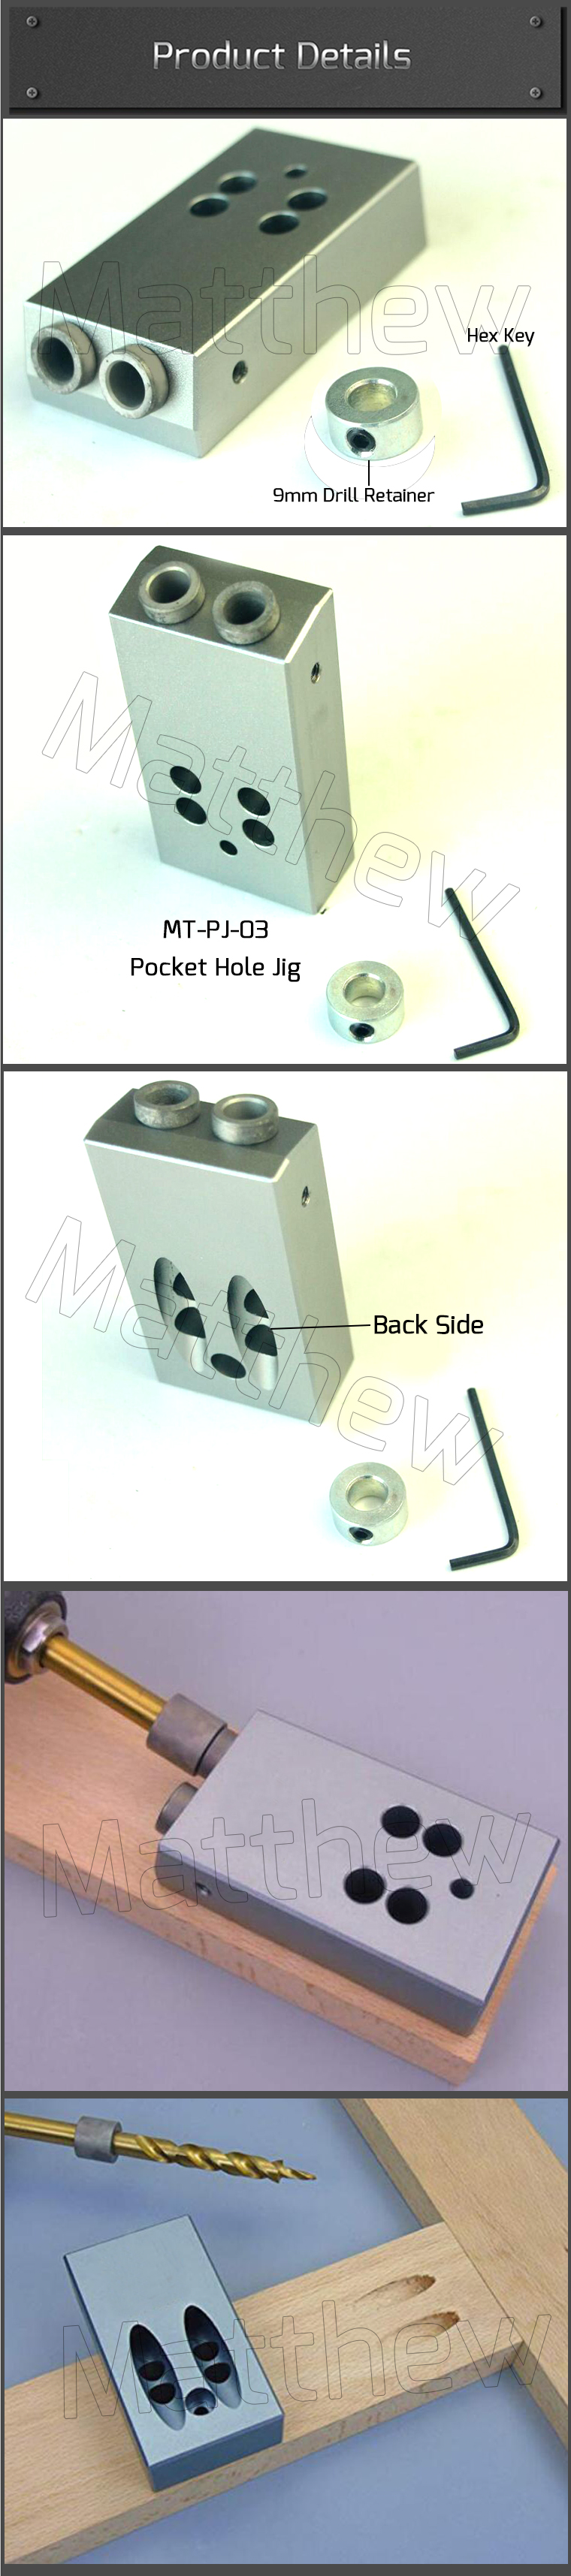 Easy Type Pocket Hole Jig For Wood Inclined Hole Drilling